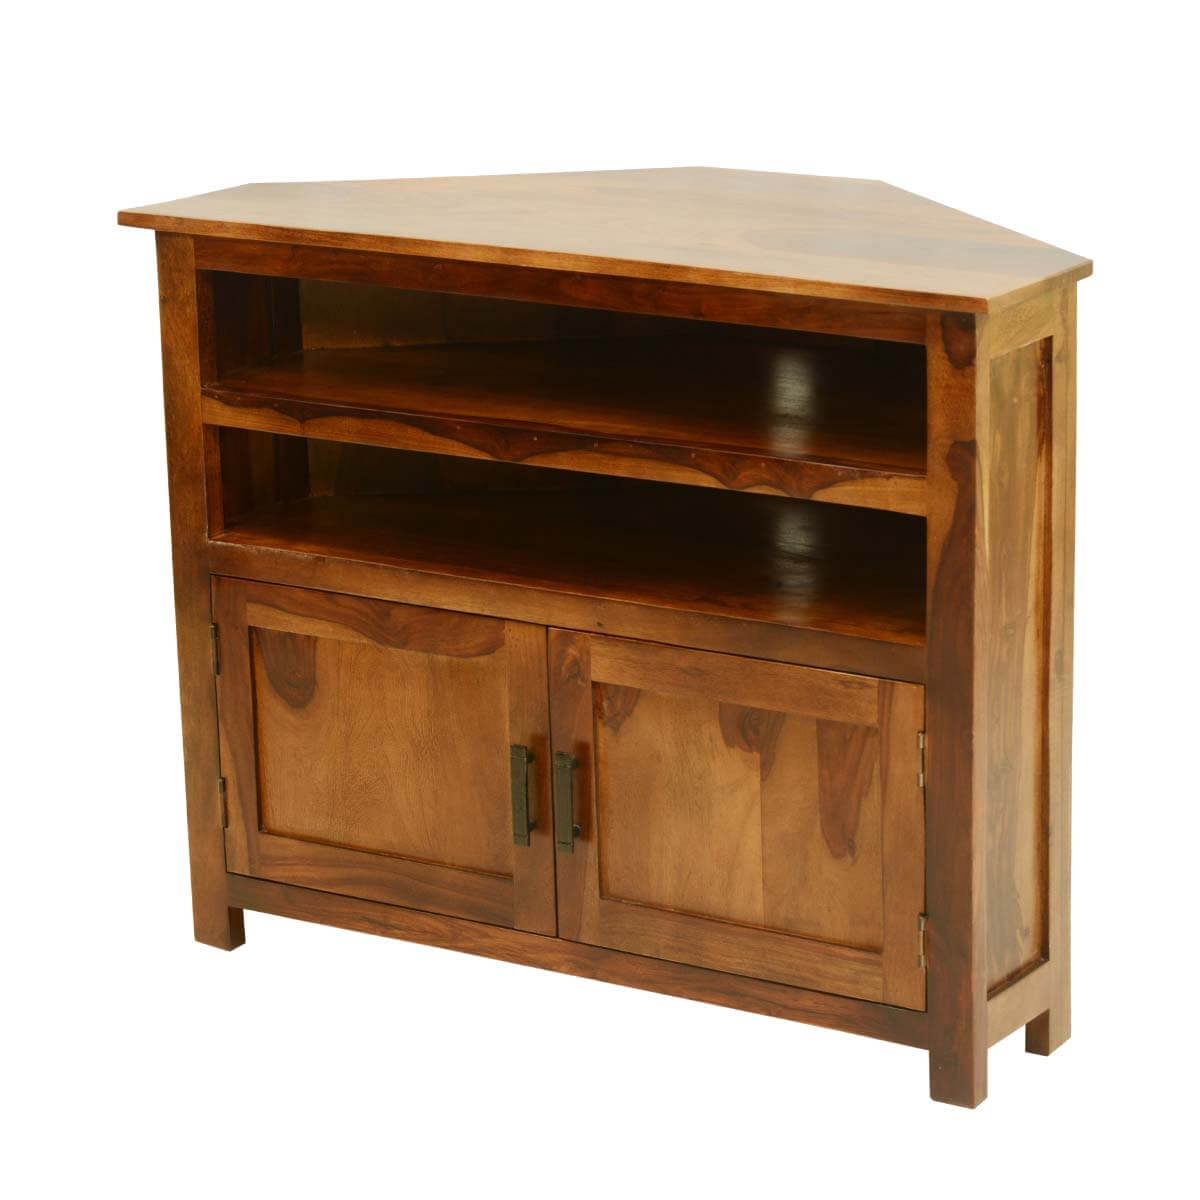 Farmhouse Solid Wood Corner Tv Media Stand With Regard To Wooden Tv Stand Corner Units (View 13 of 15)